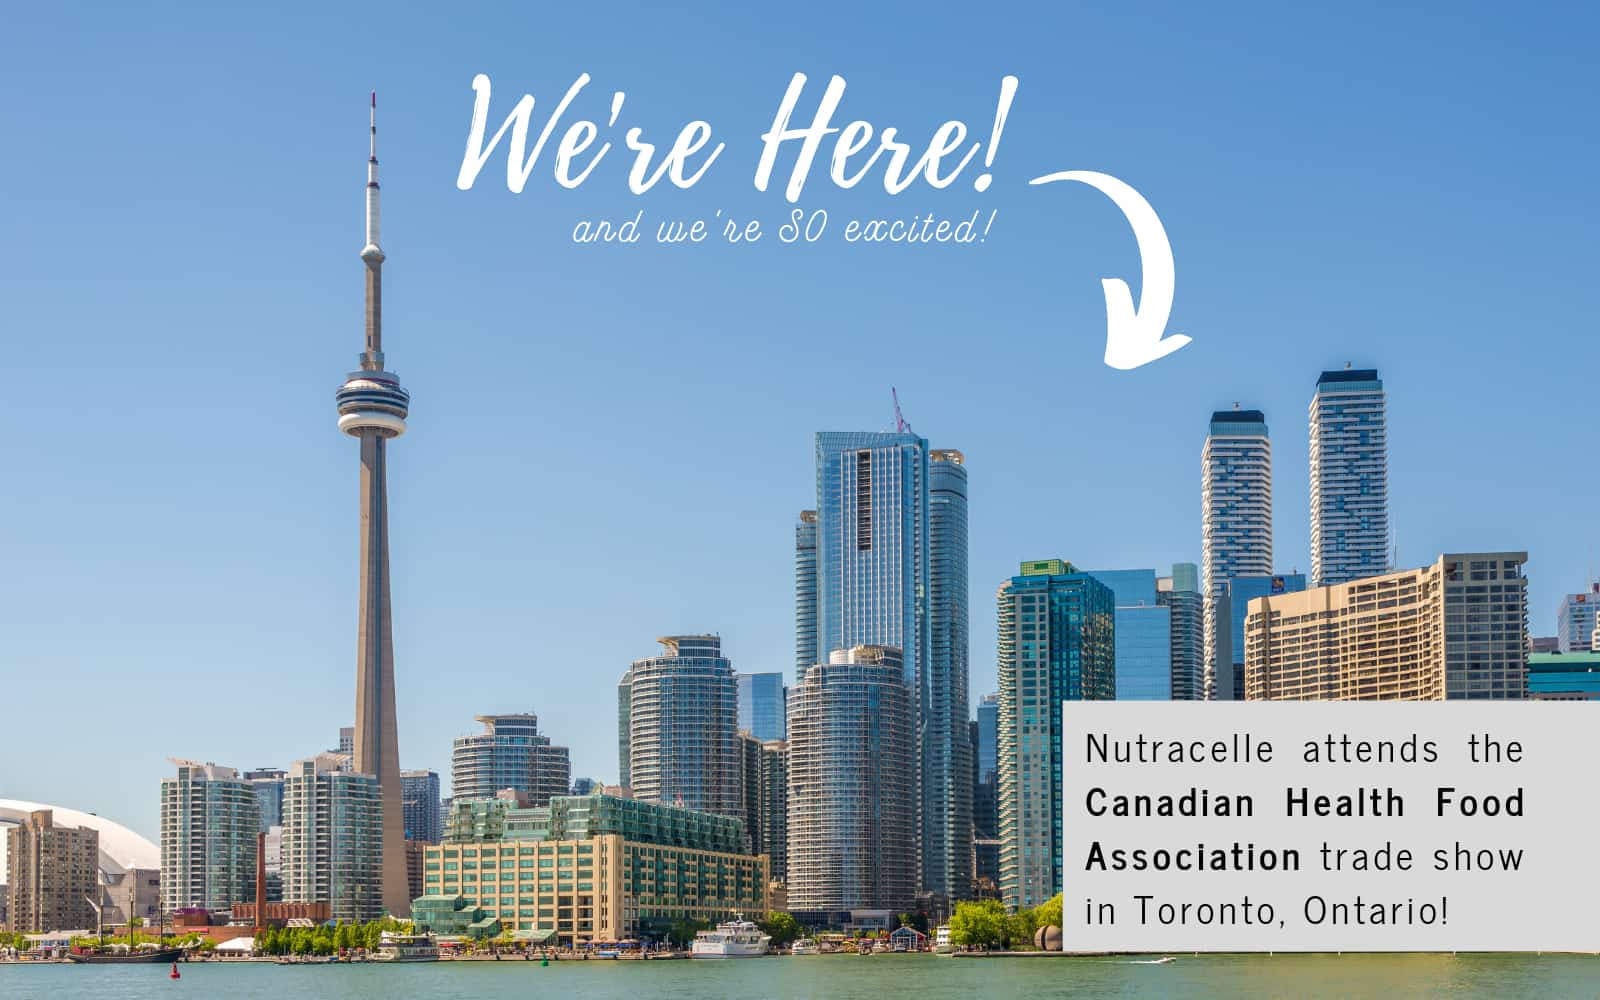 Nutracelle Attends the Canadian Health Food Association Trade Show